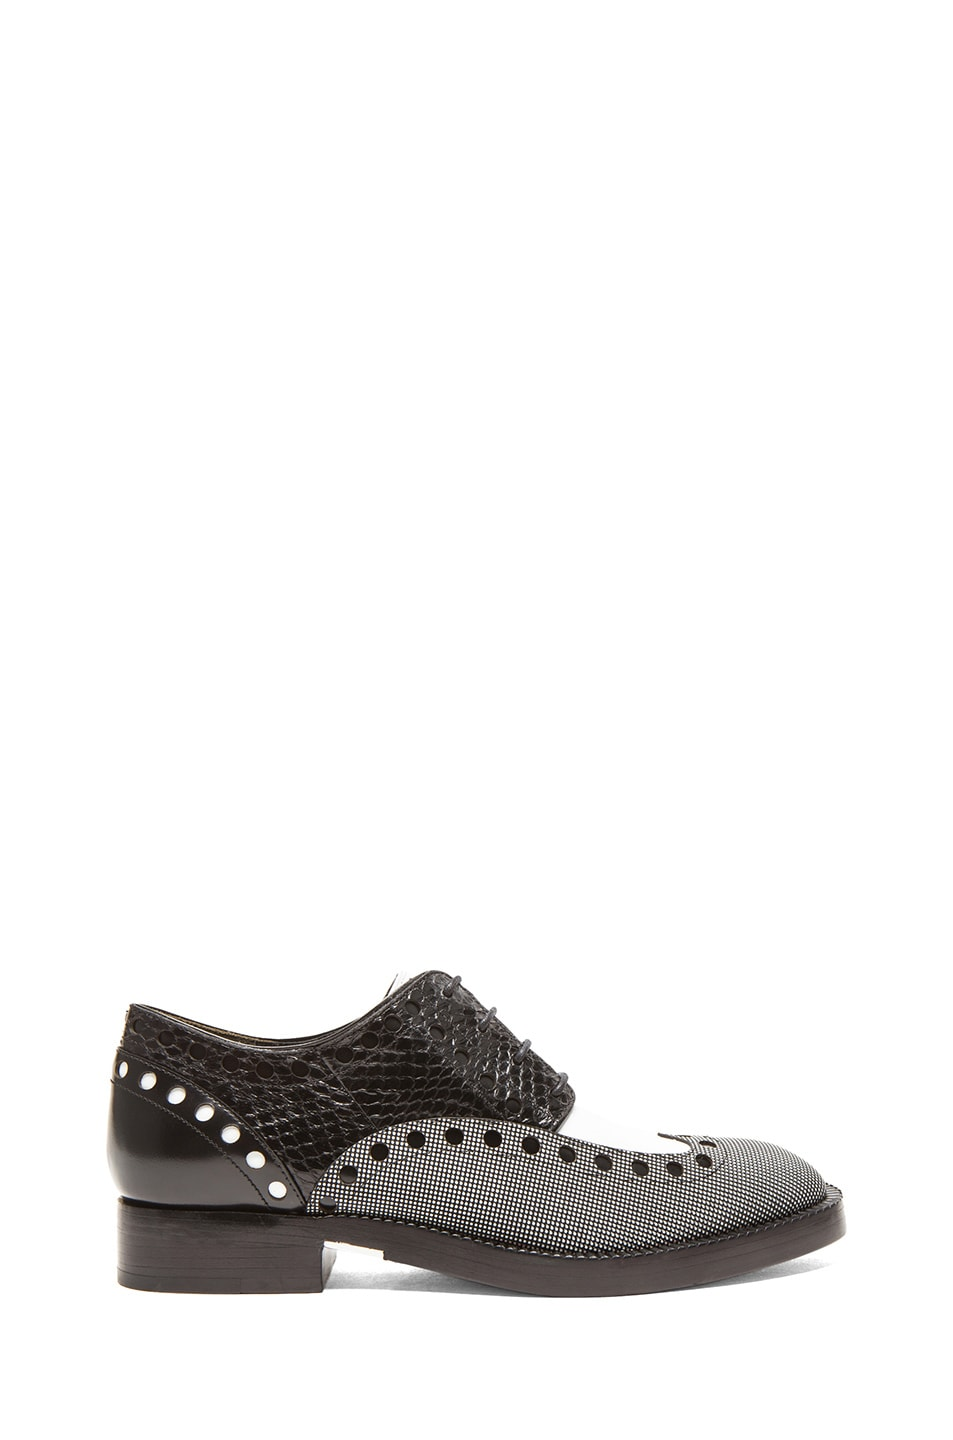 Image 1 of Alexander Wang Nathan Python Embossed & Textured Leather Oxfords in Black & White